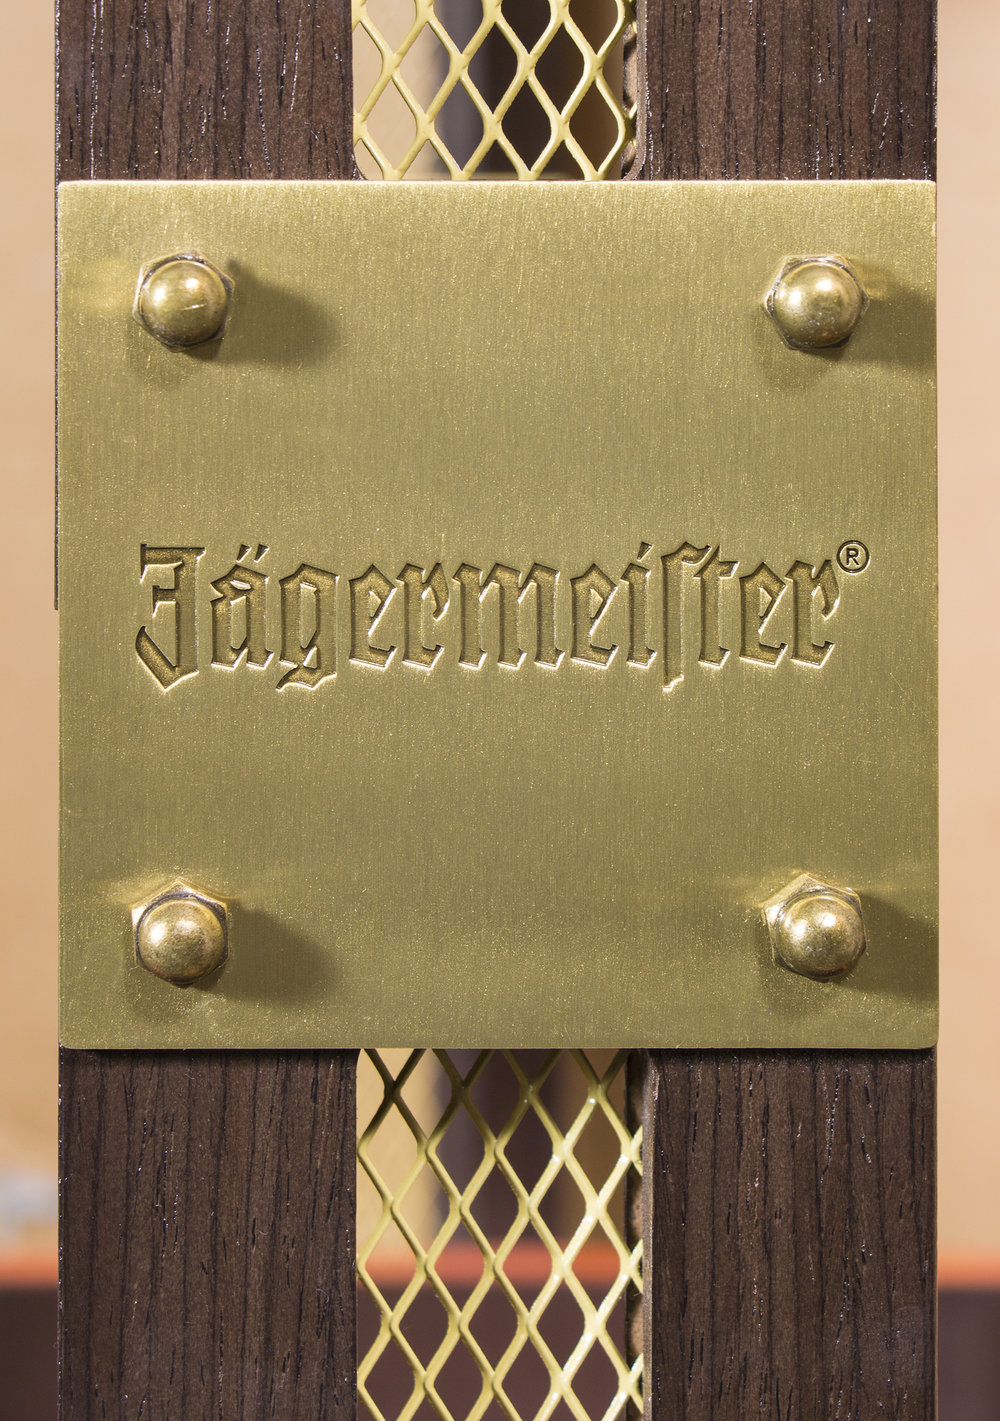 Jagermeister Rolling Display_Detail2.jpg